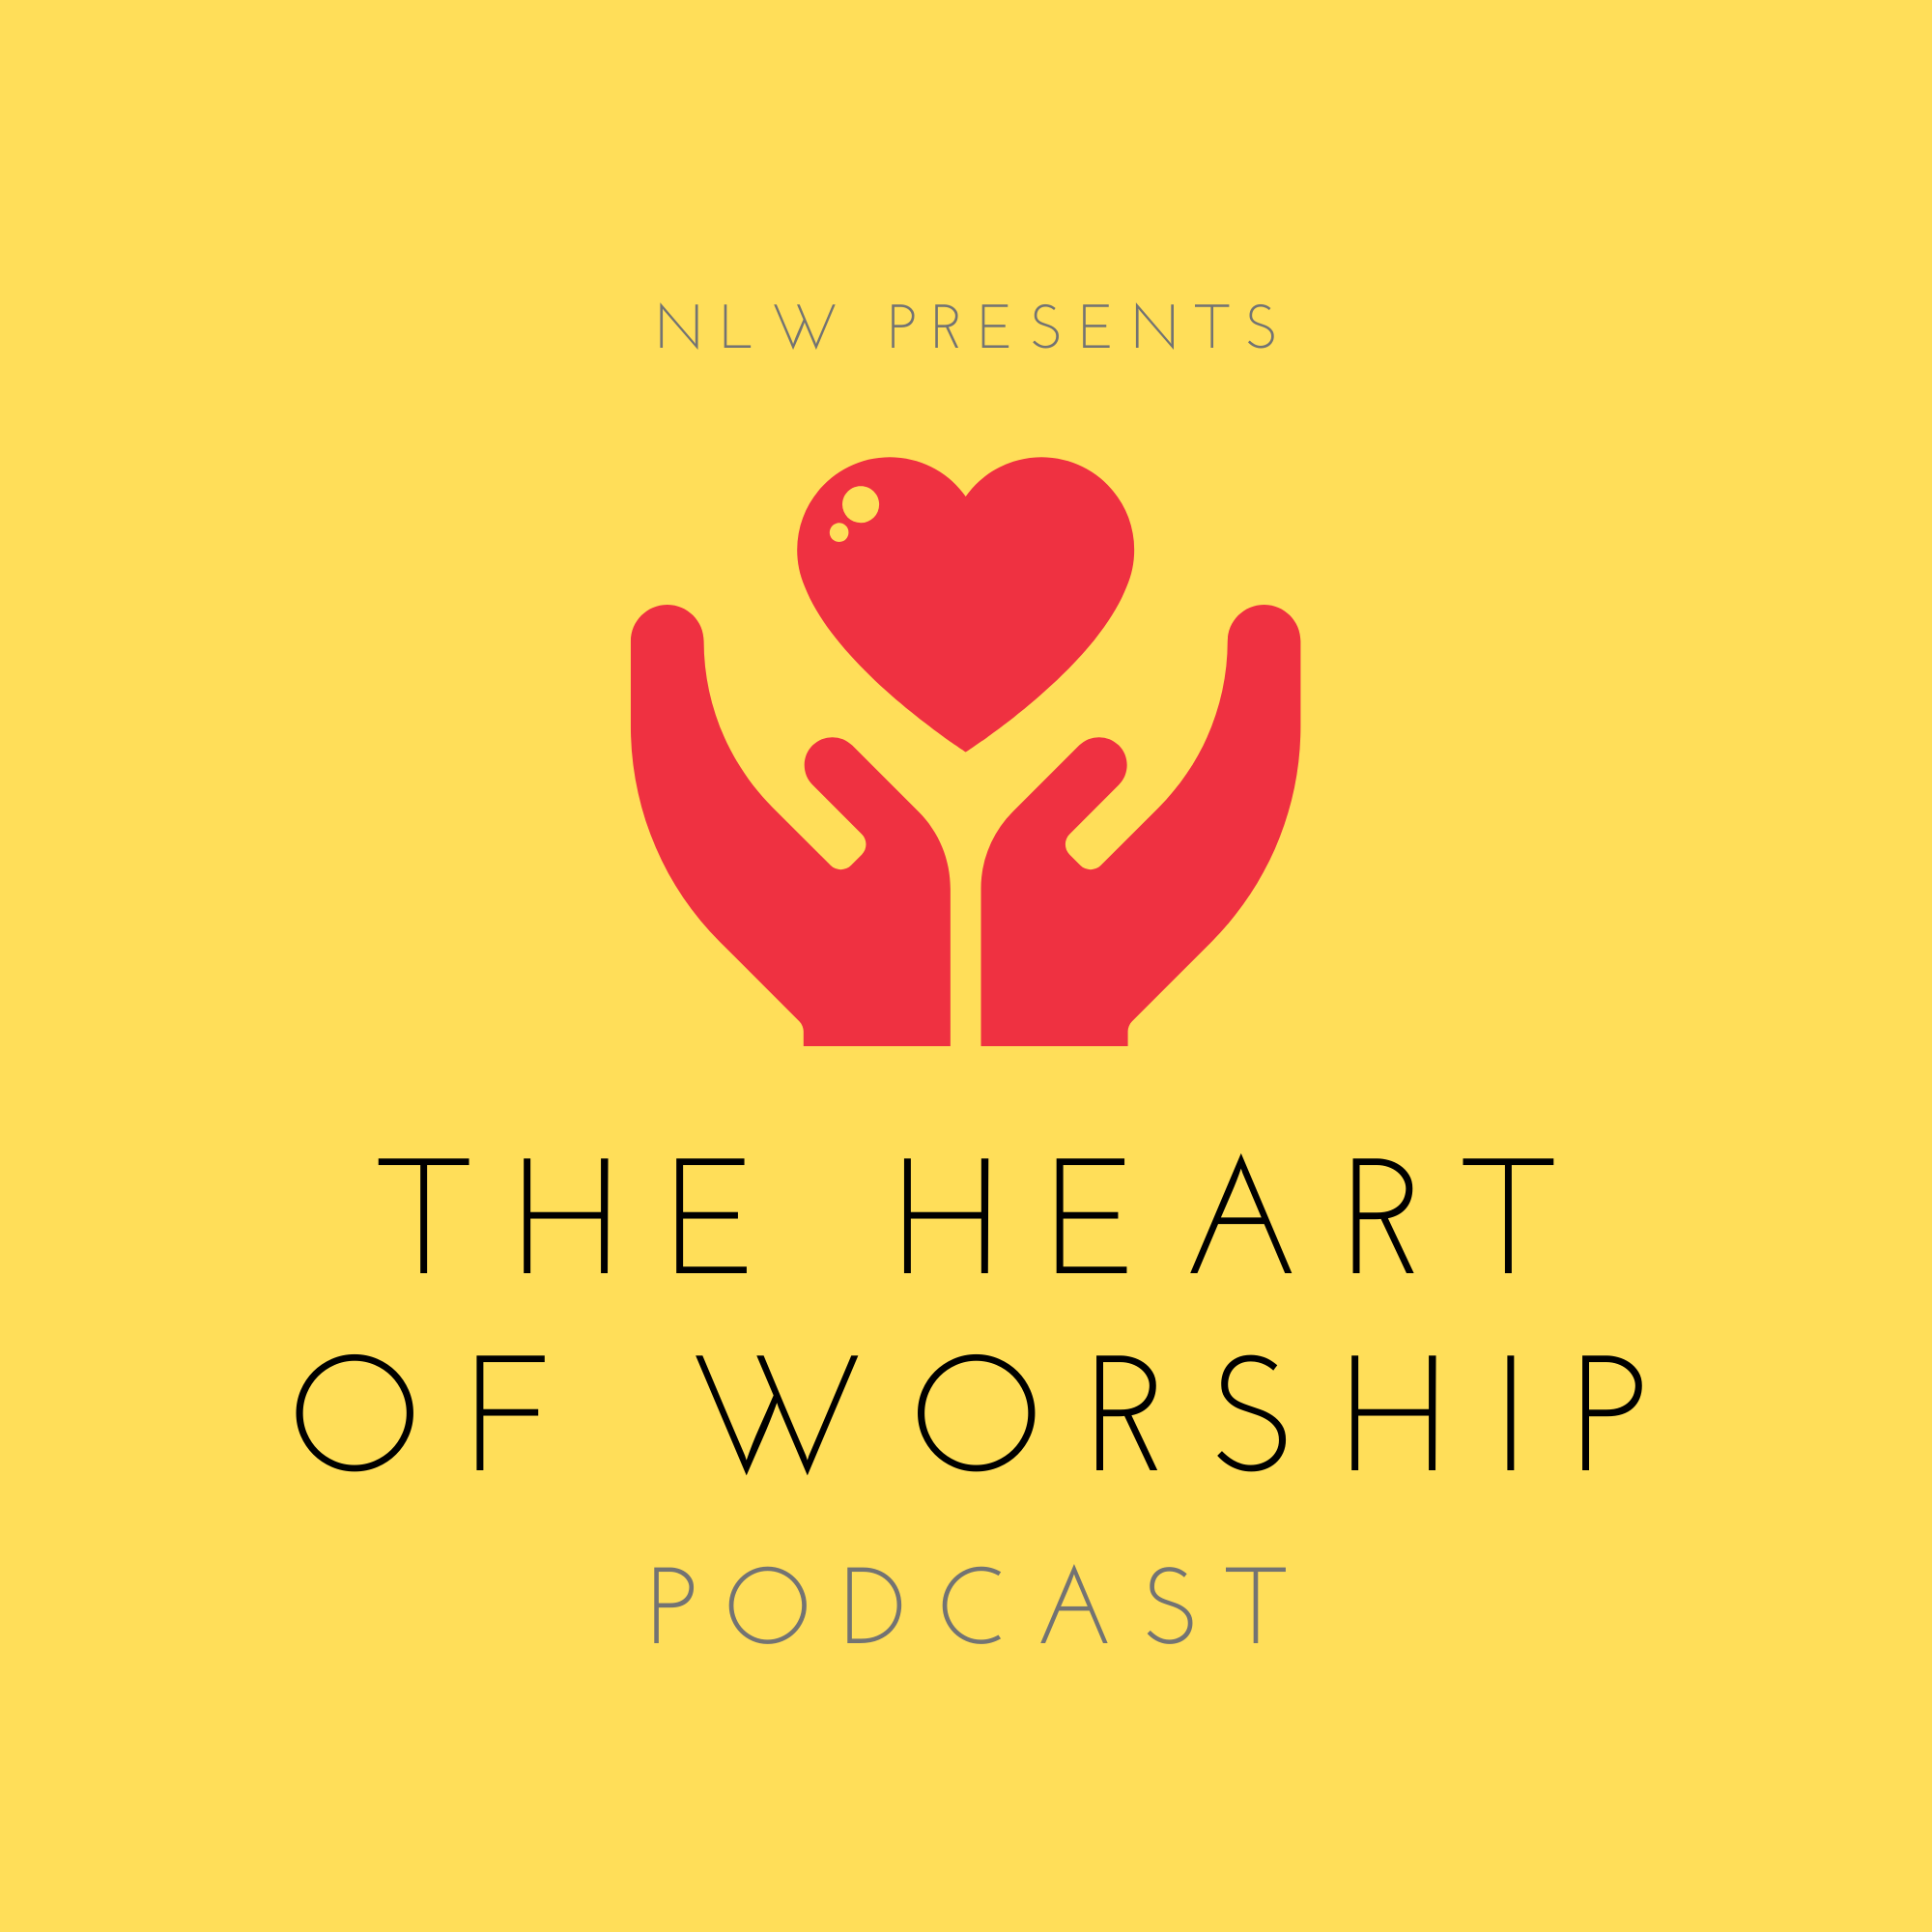 The Heart of Worship Podcast with Dwayne Moore